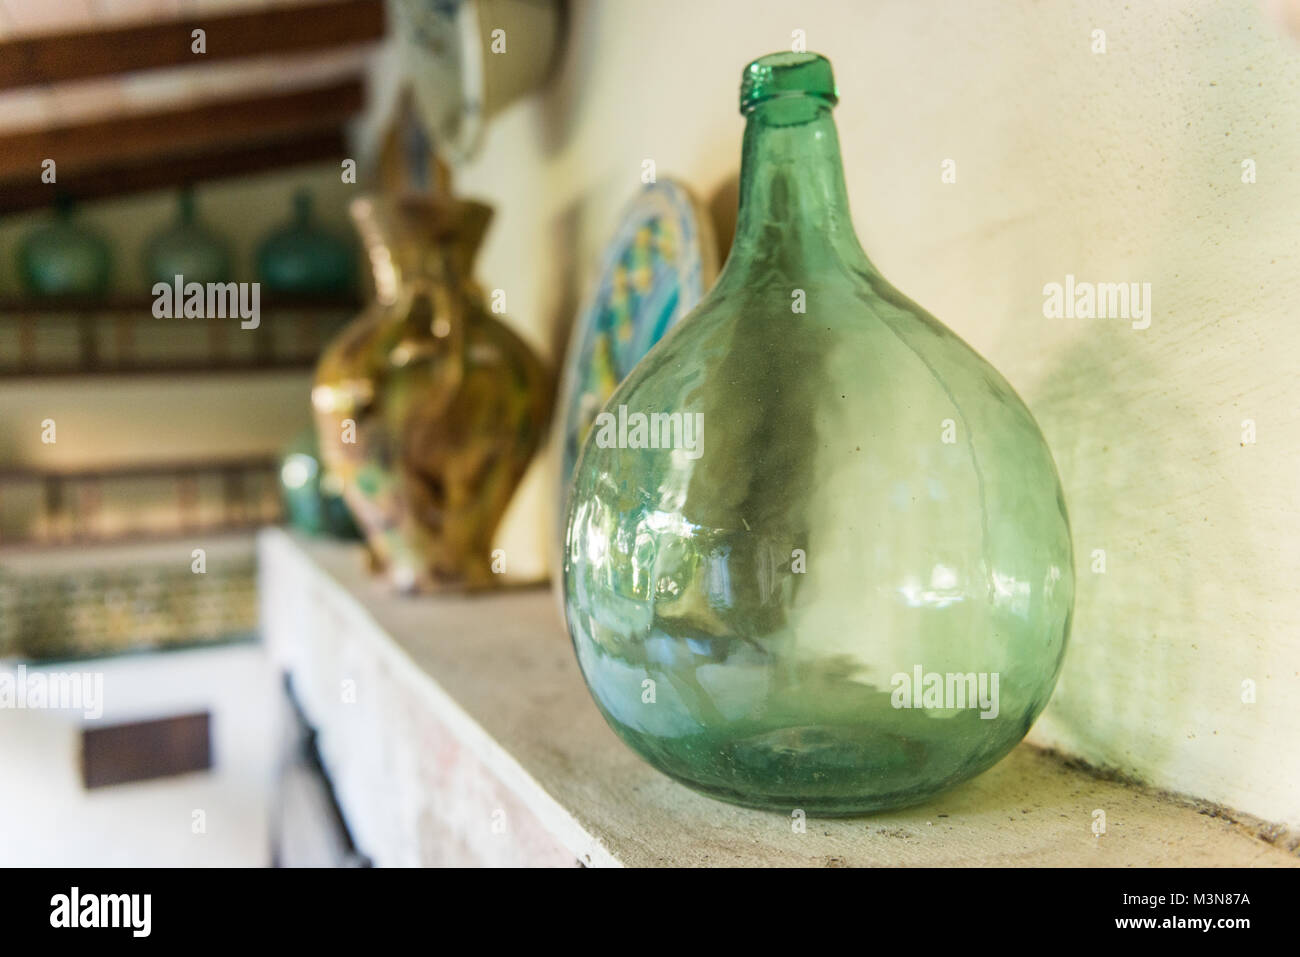 Dame Jeanne Stock Photos & Dame Jeanne Stock Images - Alamy